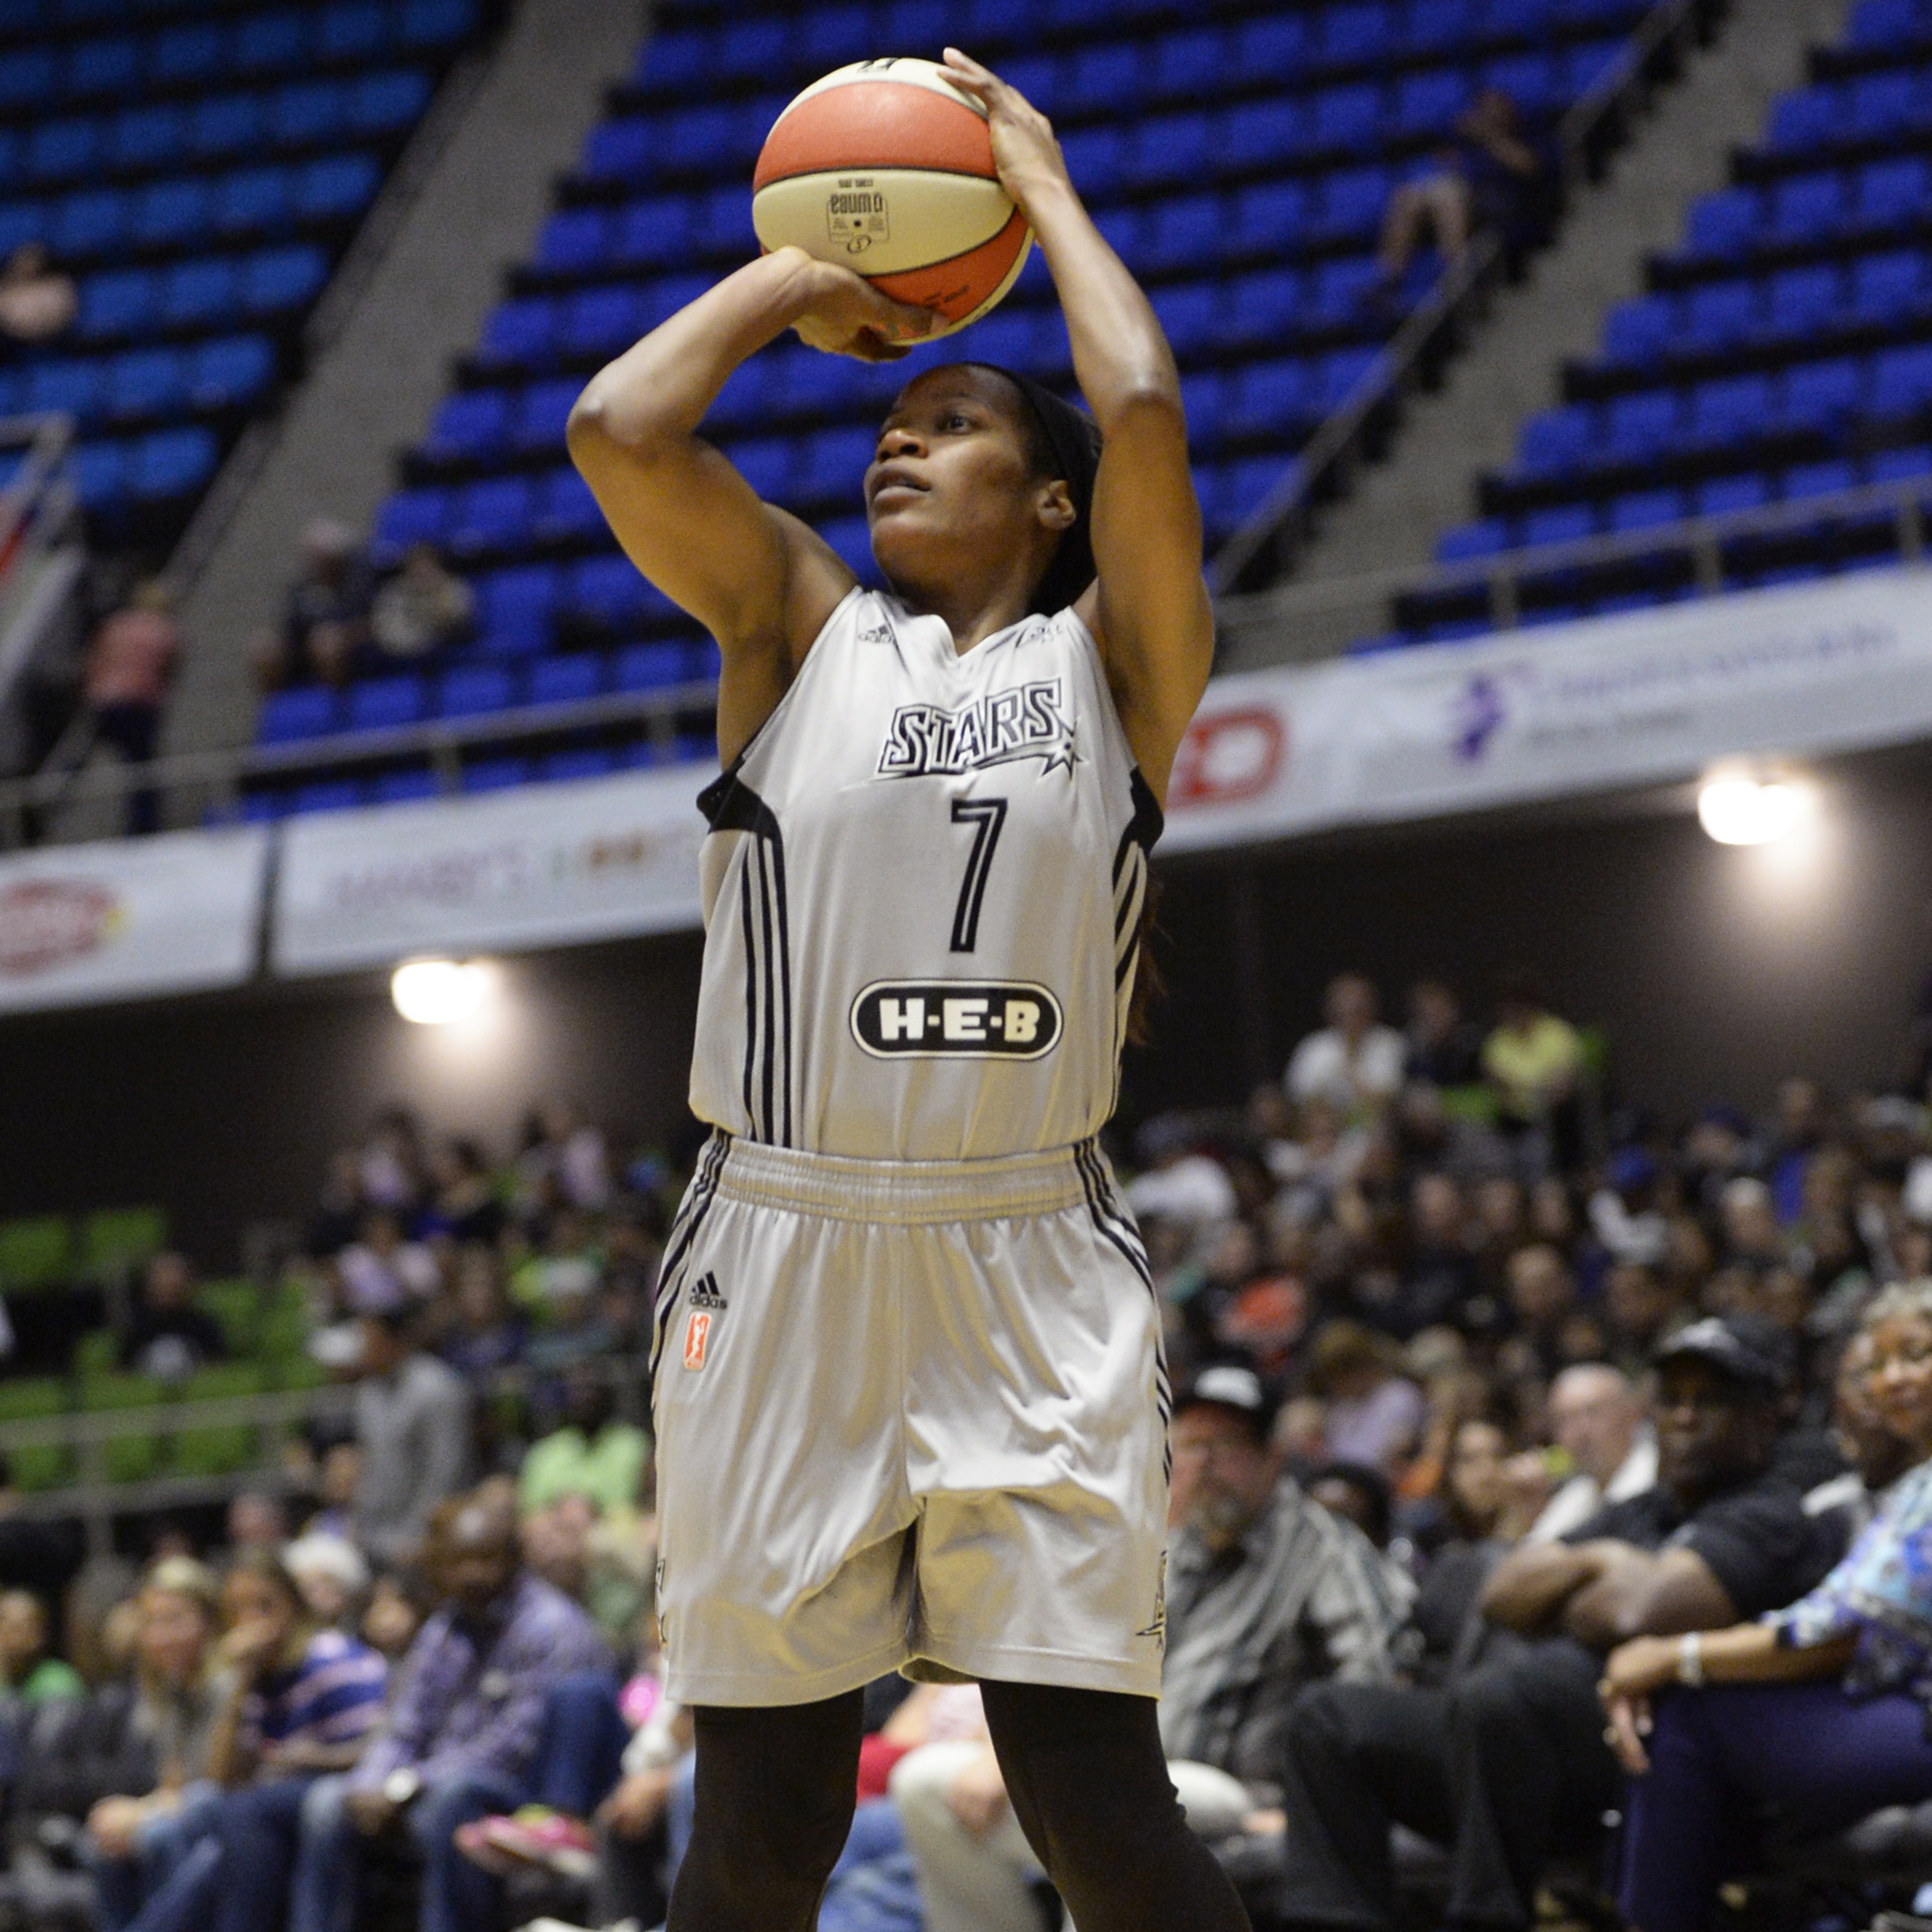 Stars guard Jia Perkins was the lone bright spot for the Stars, scoring 16 points while adding two rebounds, two assists and two steals.